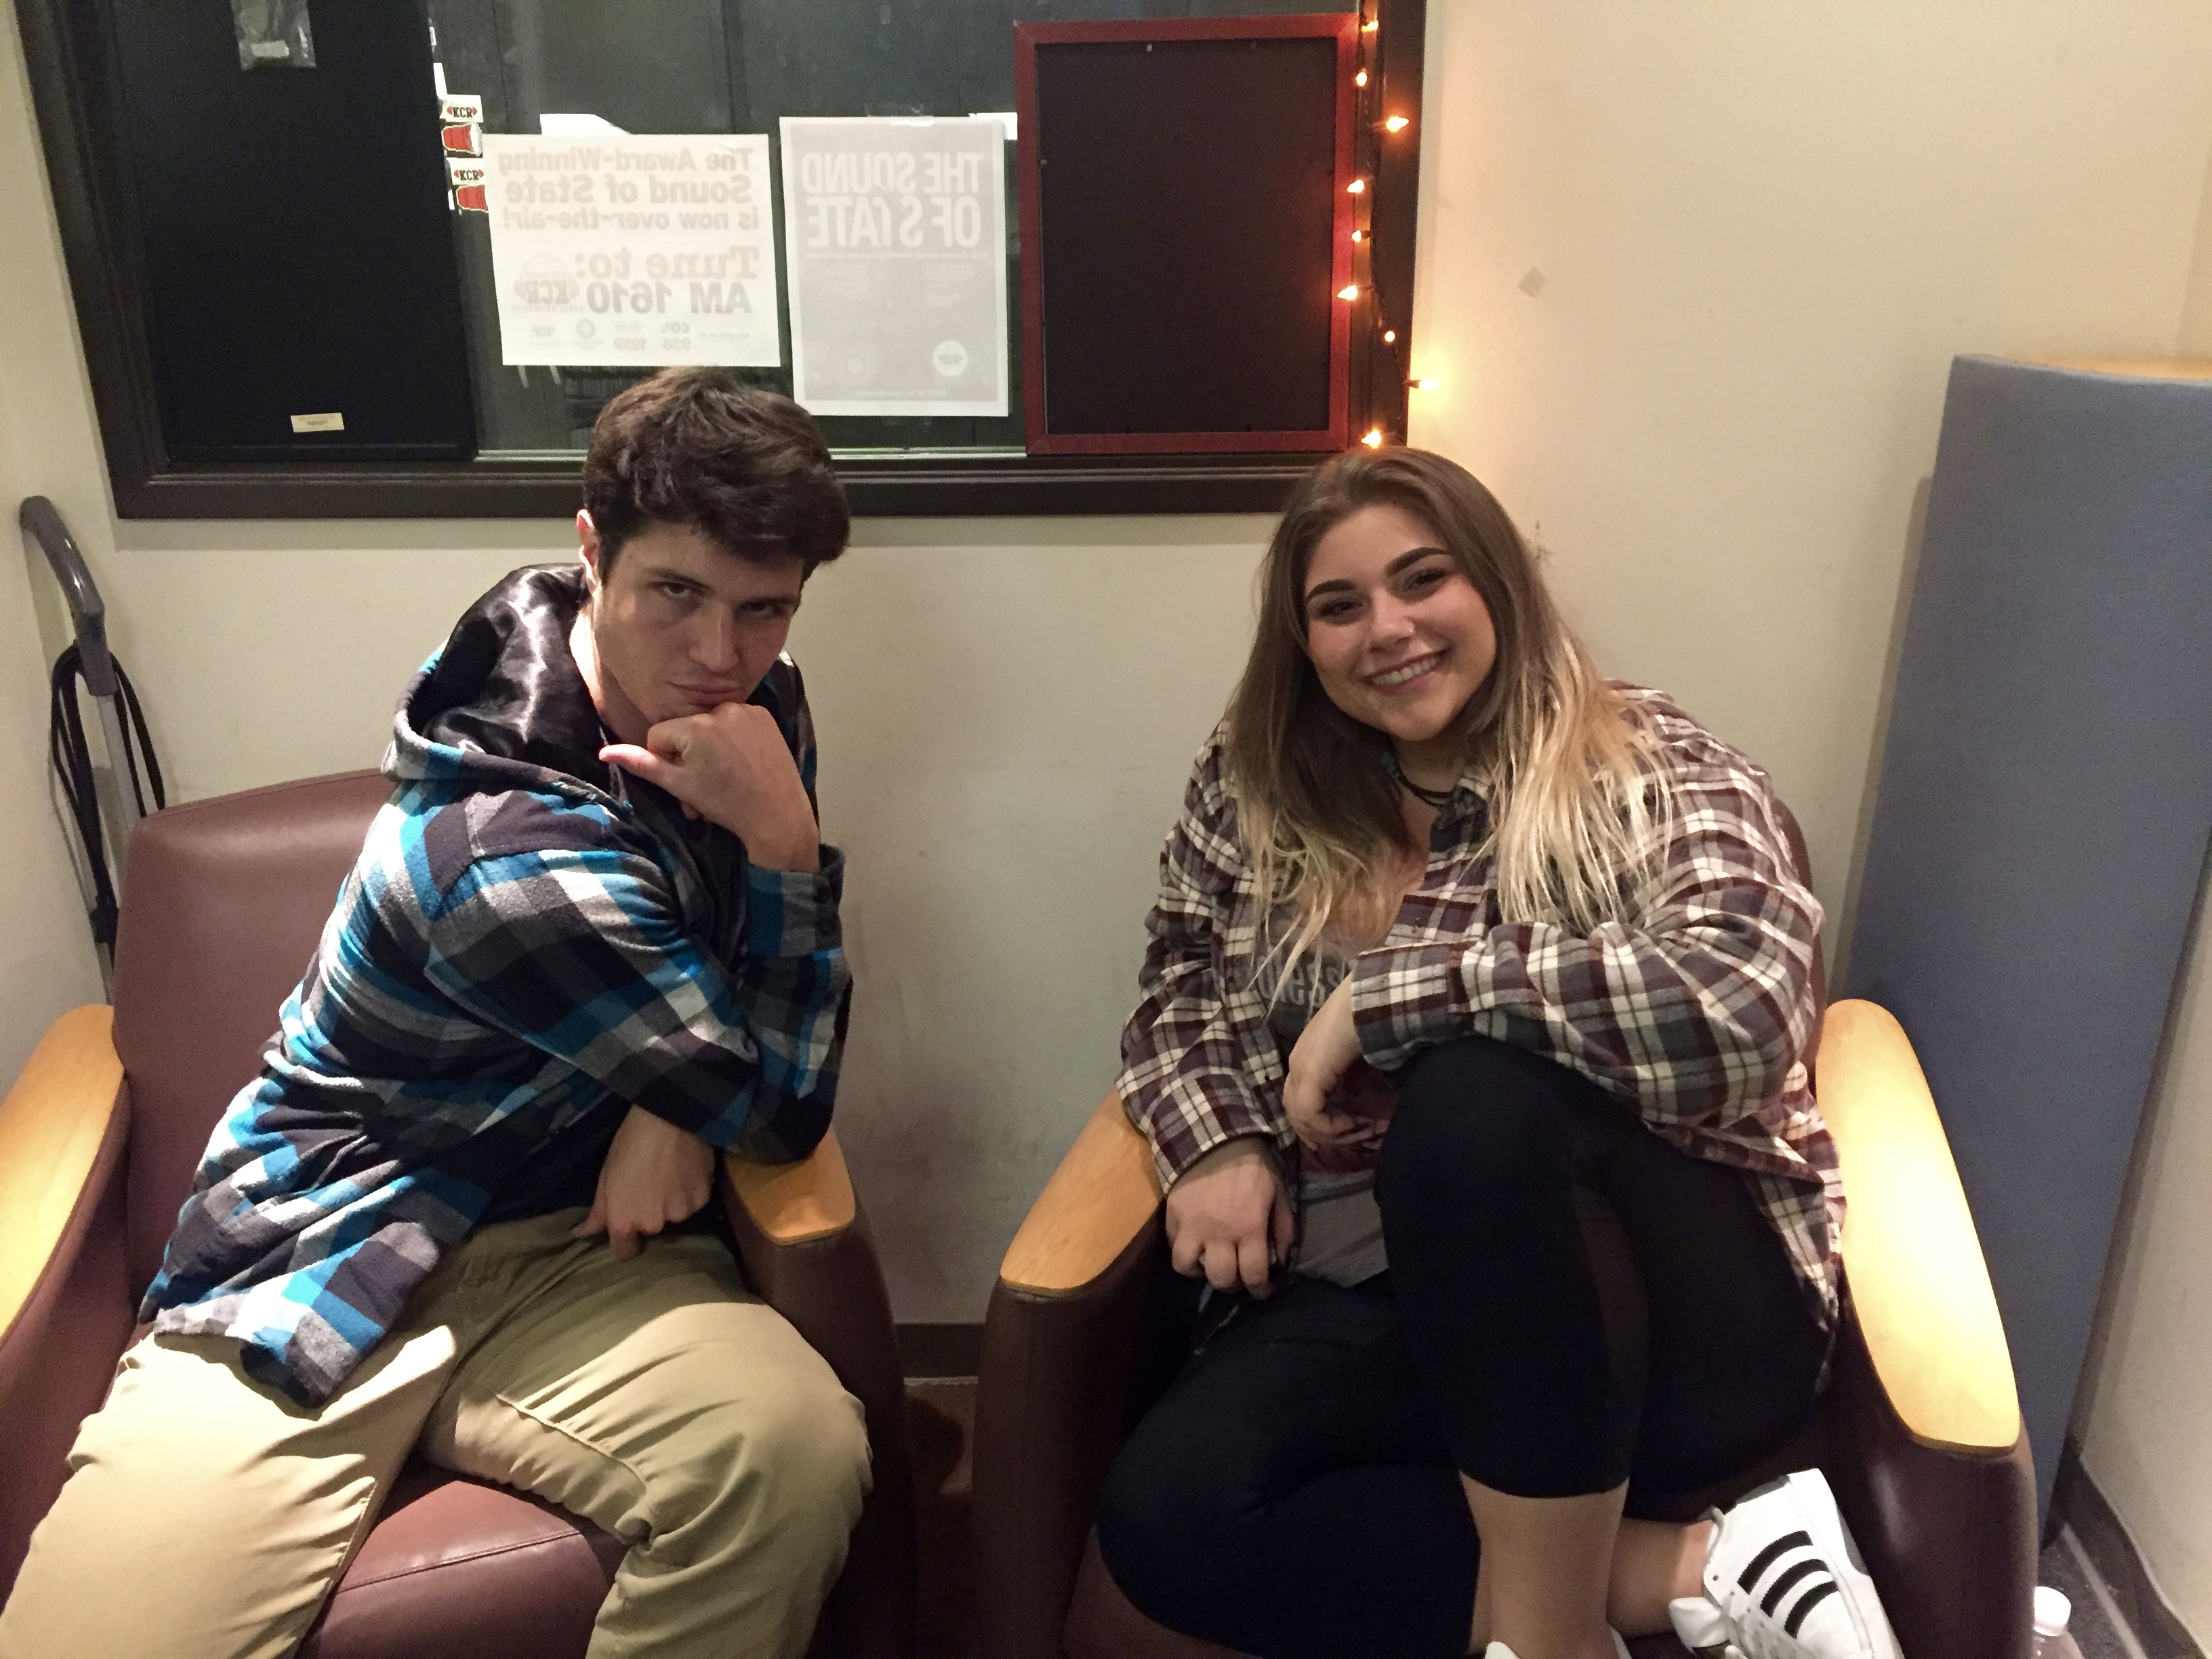 Jack and Tessa sitting in the KCR Studio.